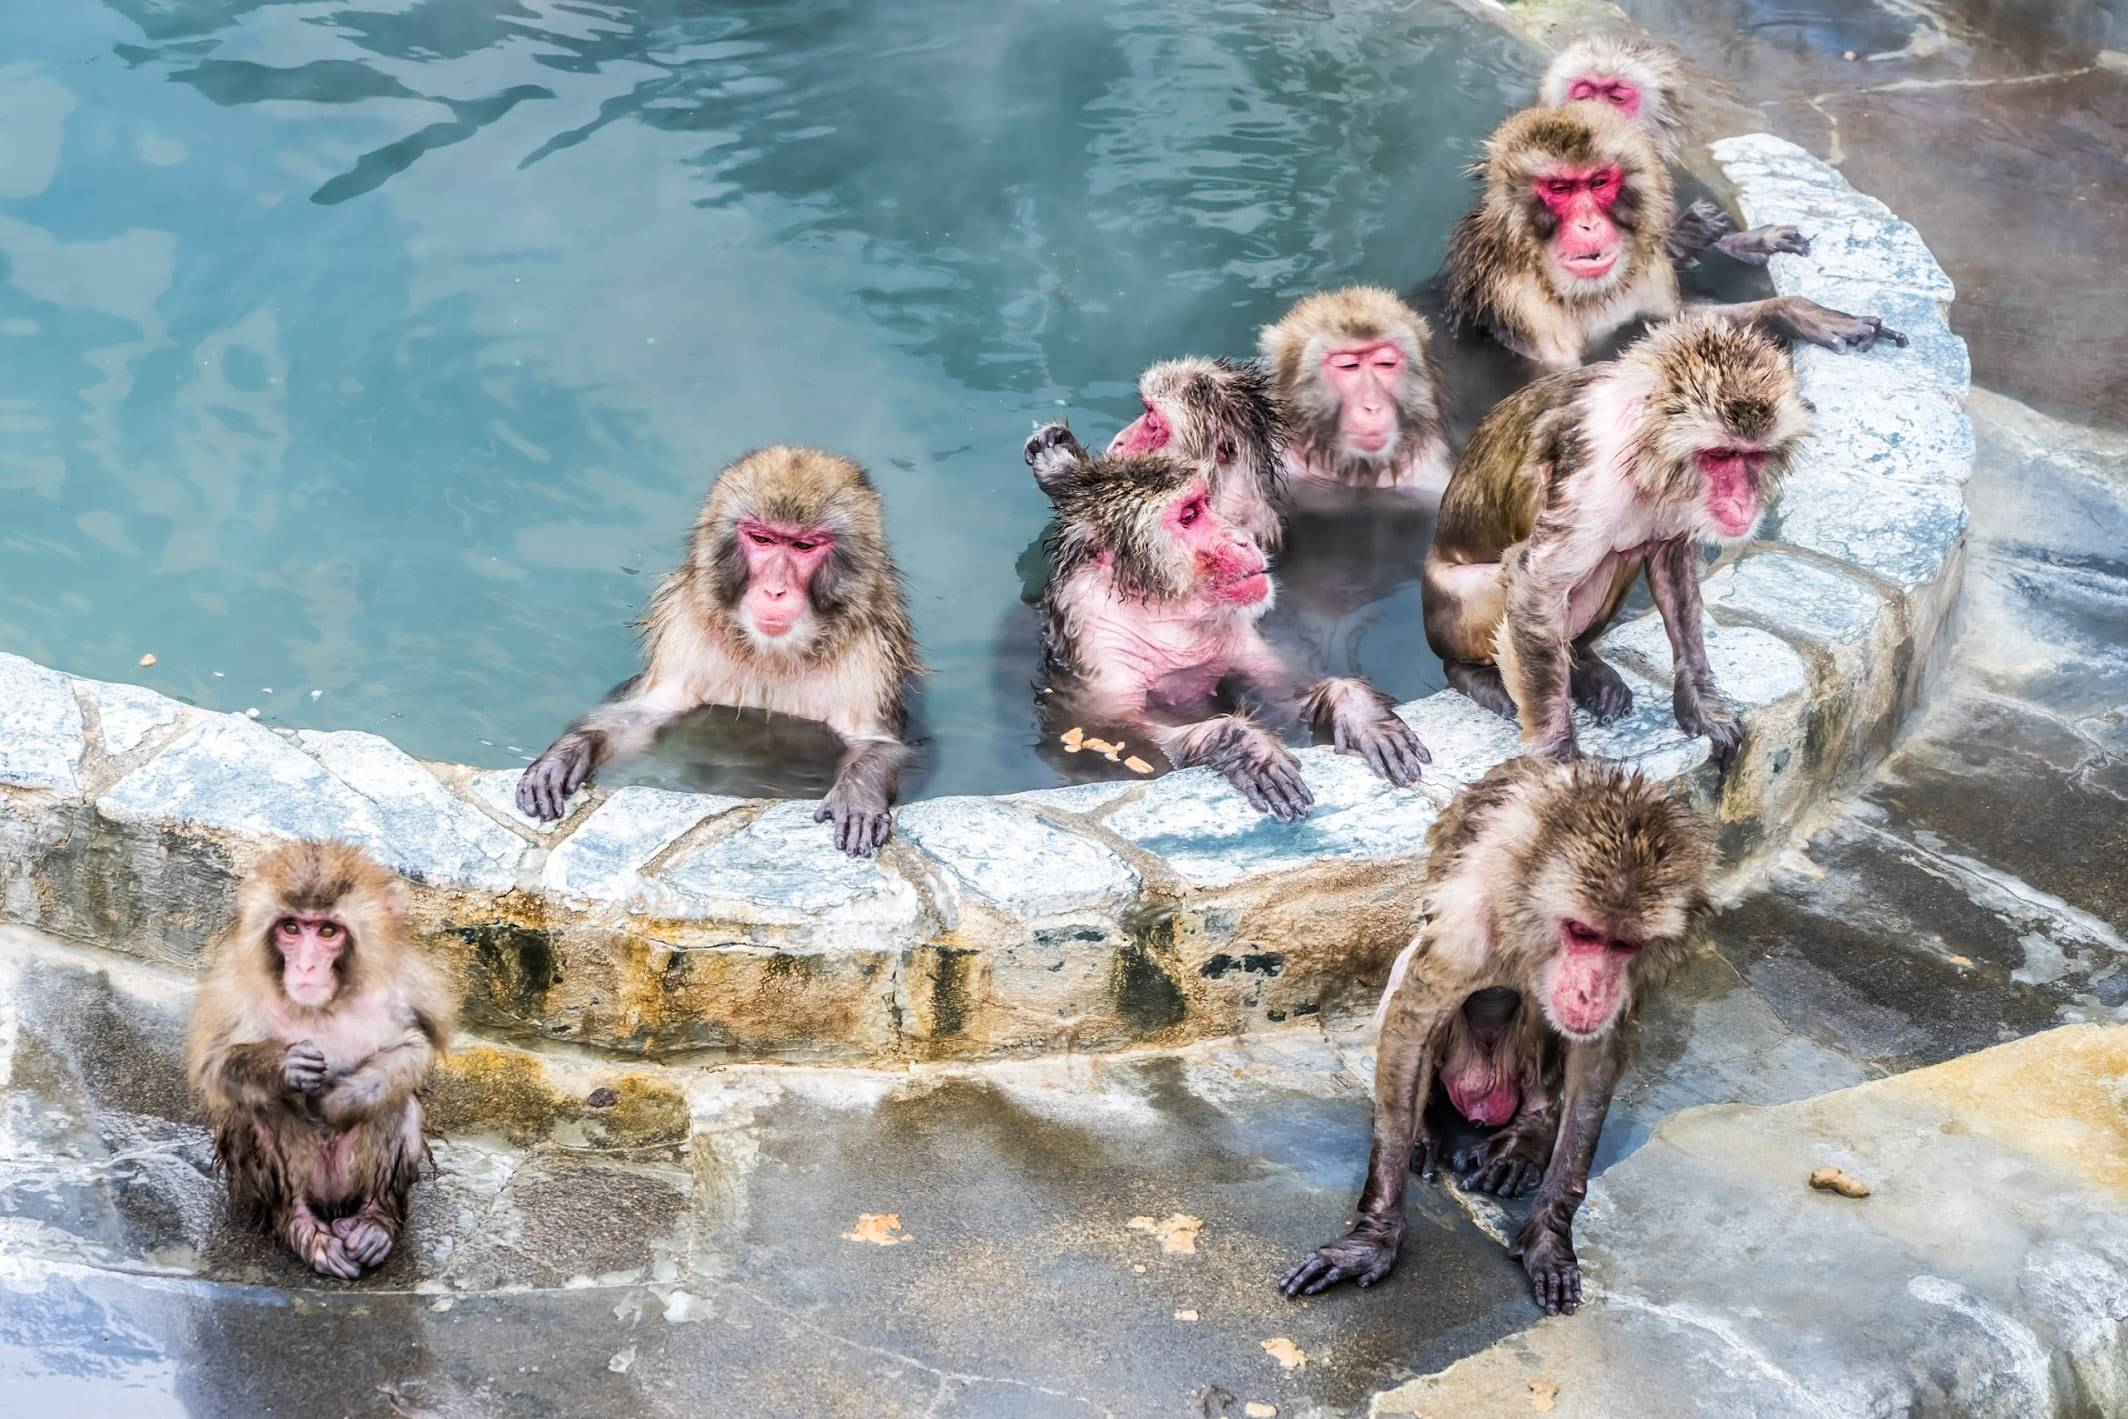 Hakodateshi Nettai Botanical Gardens (Hot-Tubbing Monkeys)